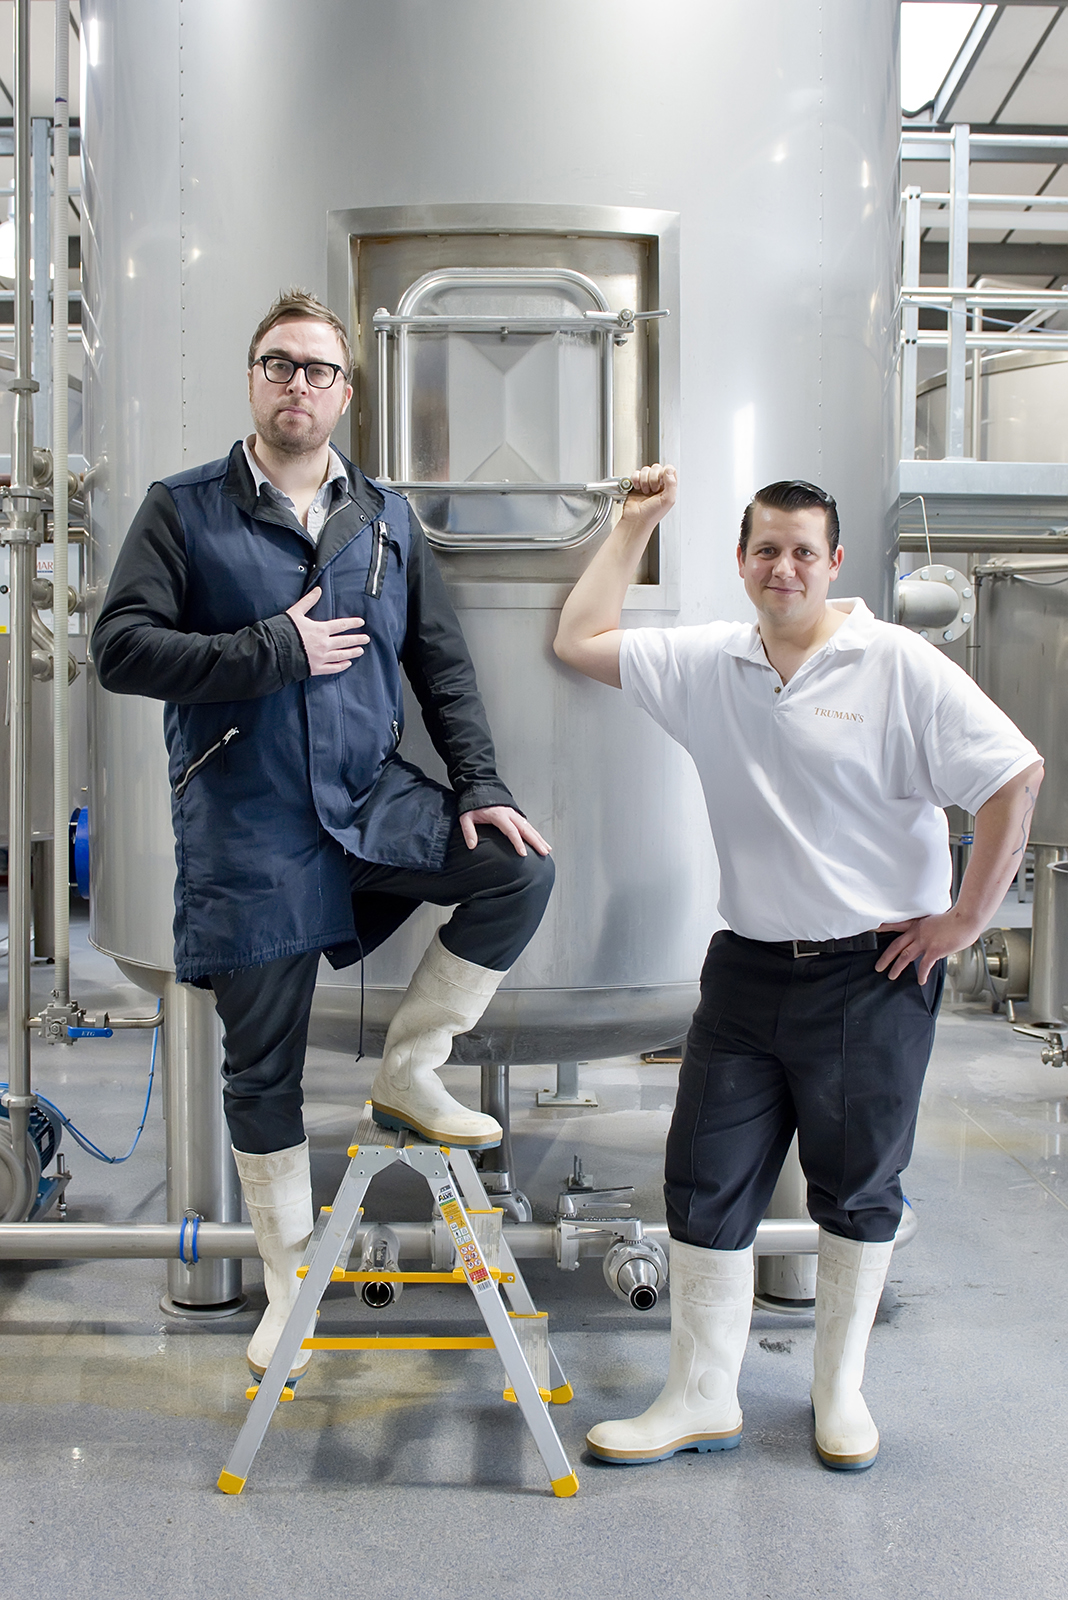 PR photography shoot with Danny Wallace for Nicholson's Pubs